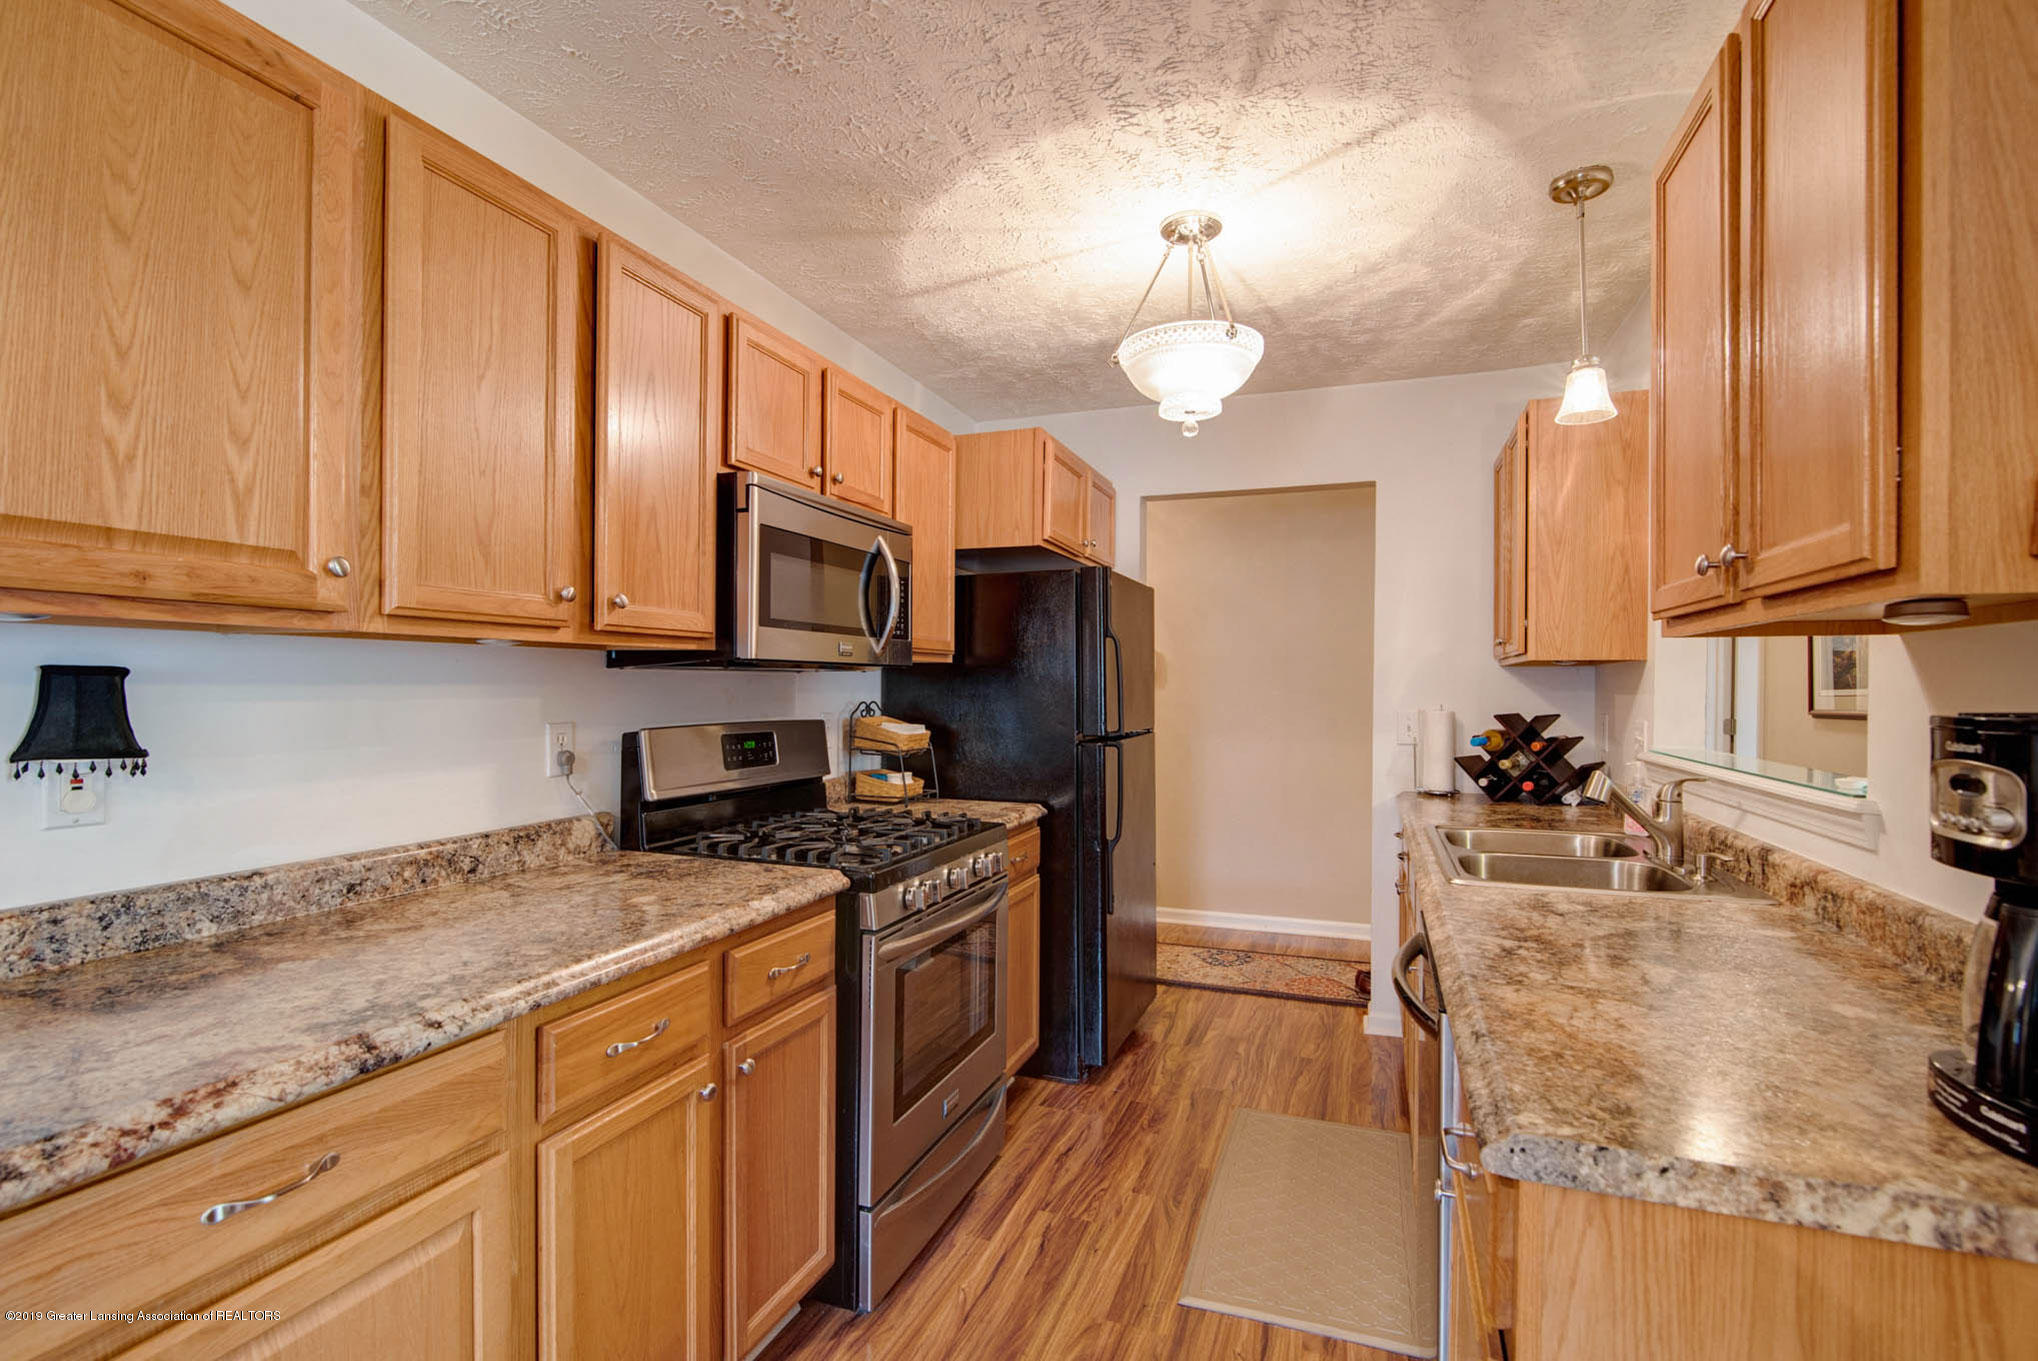 224 N Dibble Ave - Photo-Oct-01,-2-27-29-PM_37-PM - 11